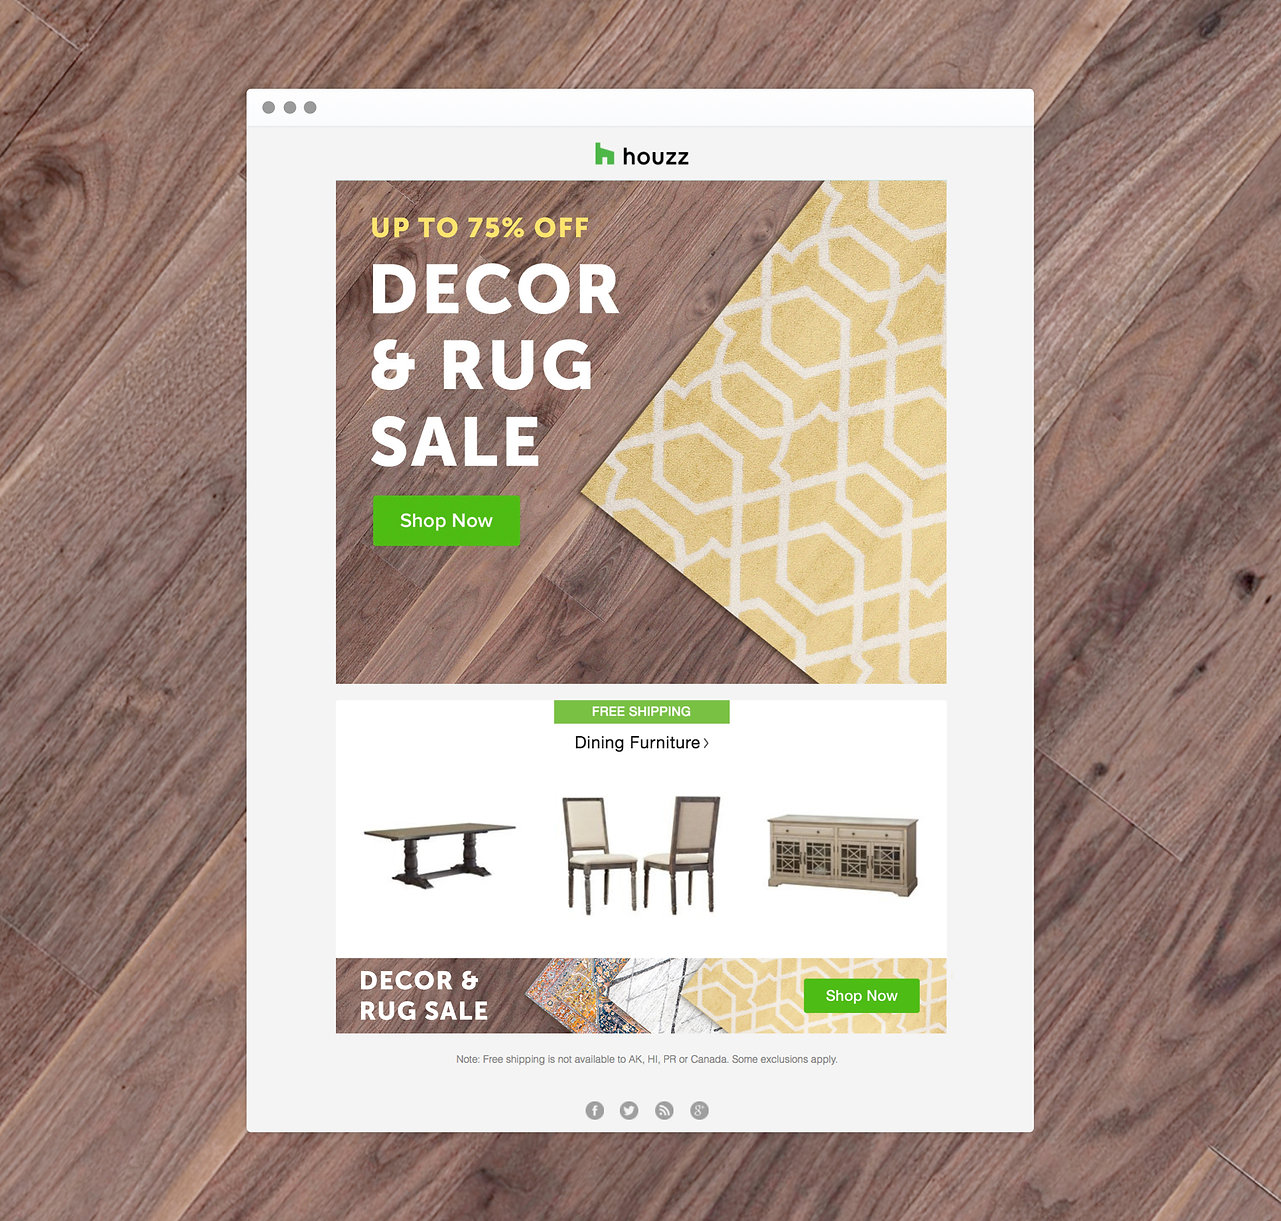 Decor and Rug Sale with BG.jpg